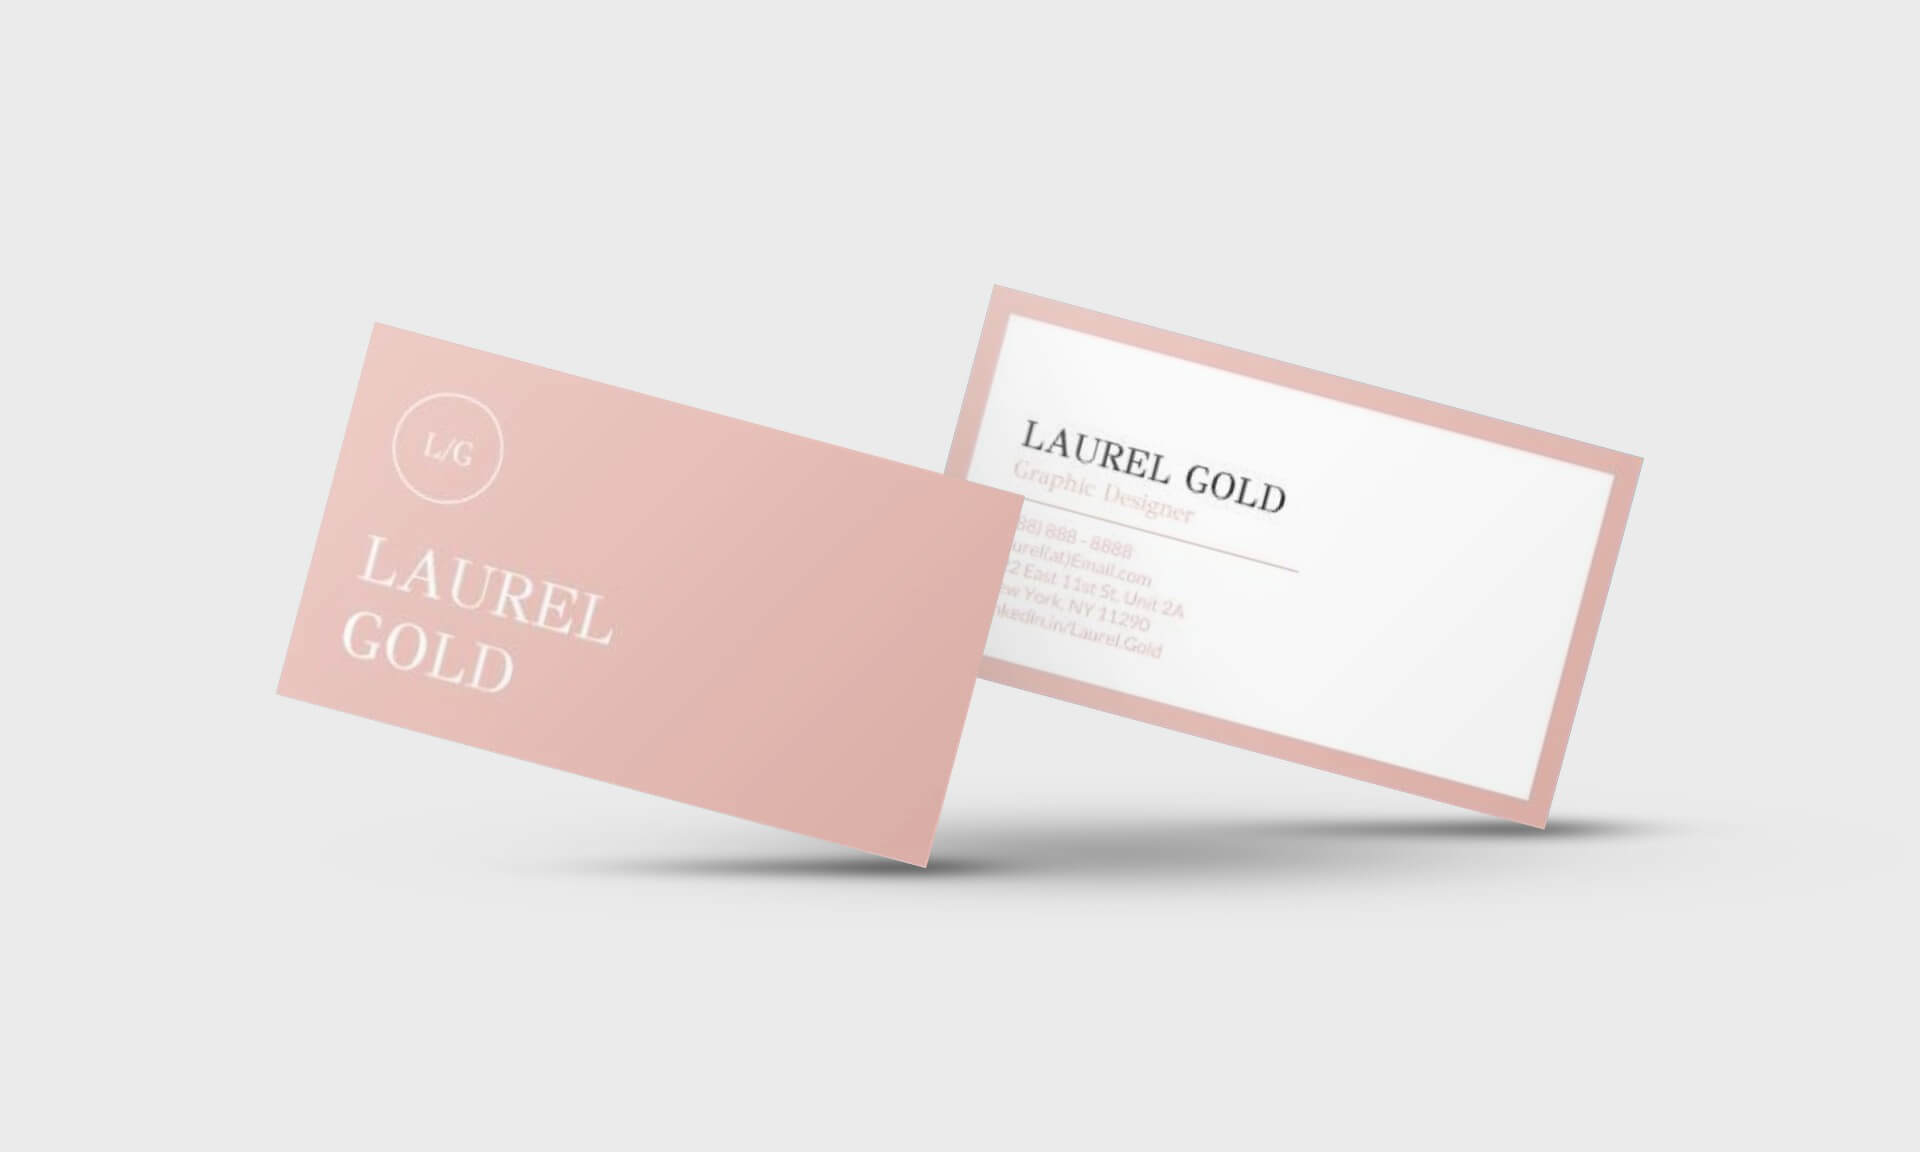 Laurel Gold Google Docs Business Card Template - Stand Out Shop Intended For Business Card Template For Google Docs